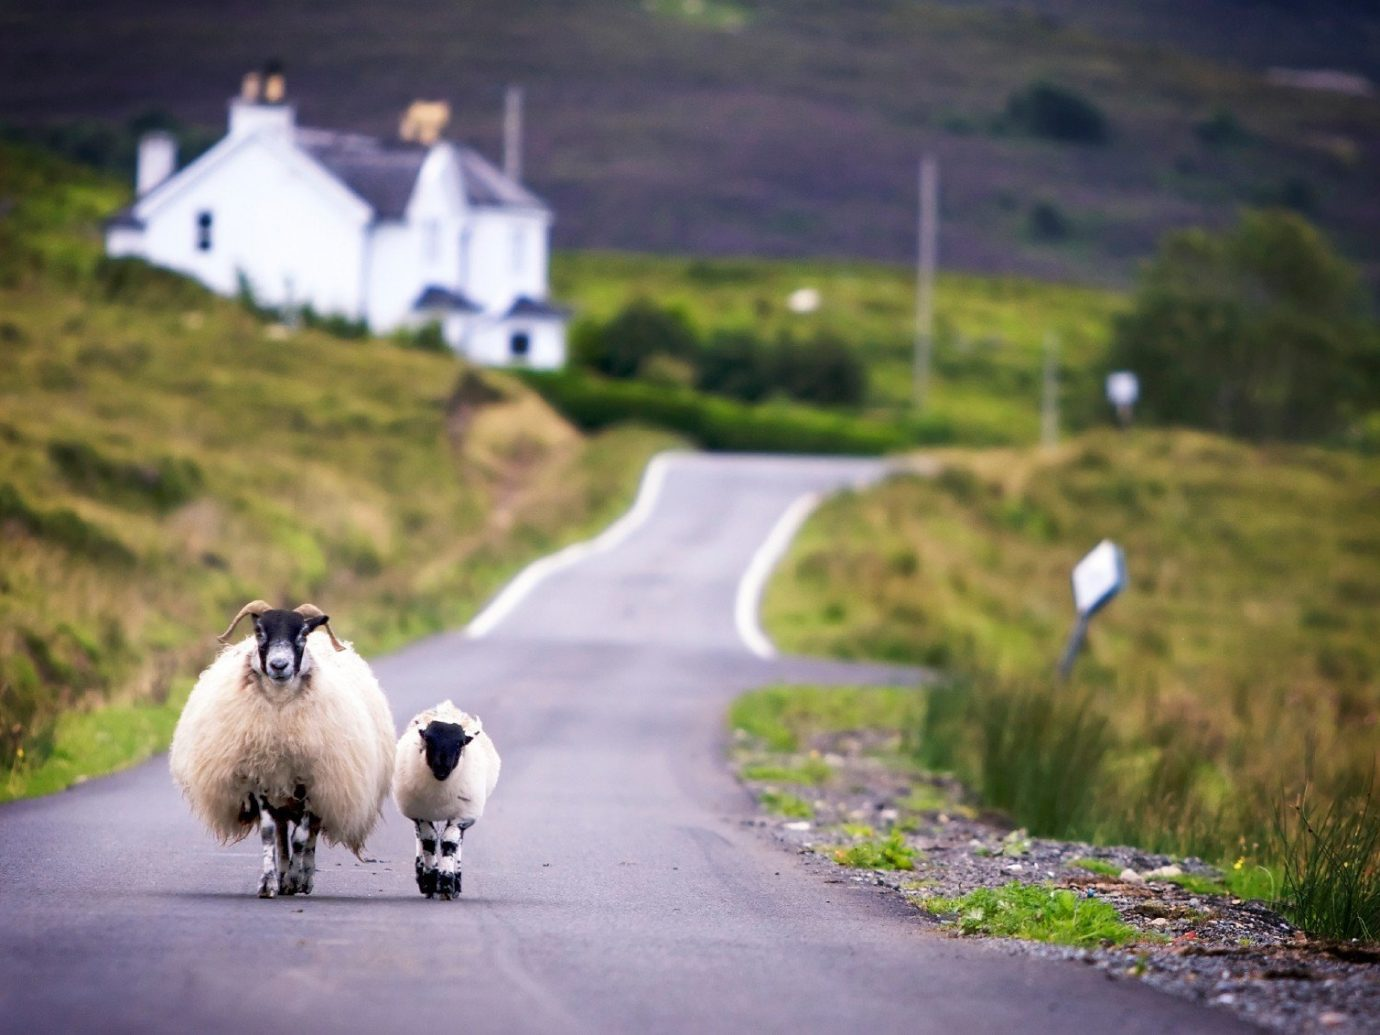 Arts + Culture grass outdoor road sheep mammal Dog rural area dog like mammal